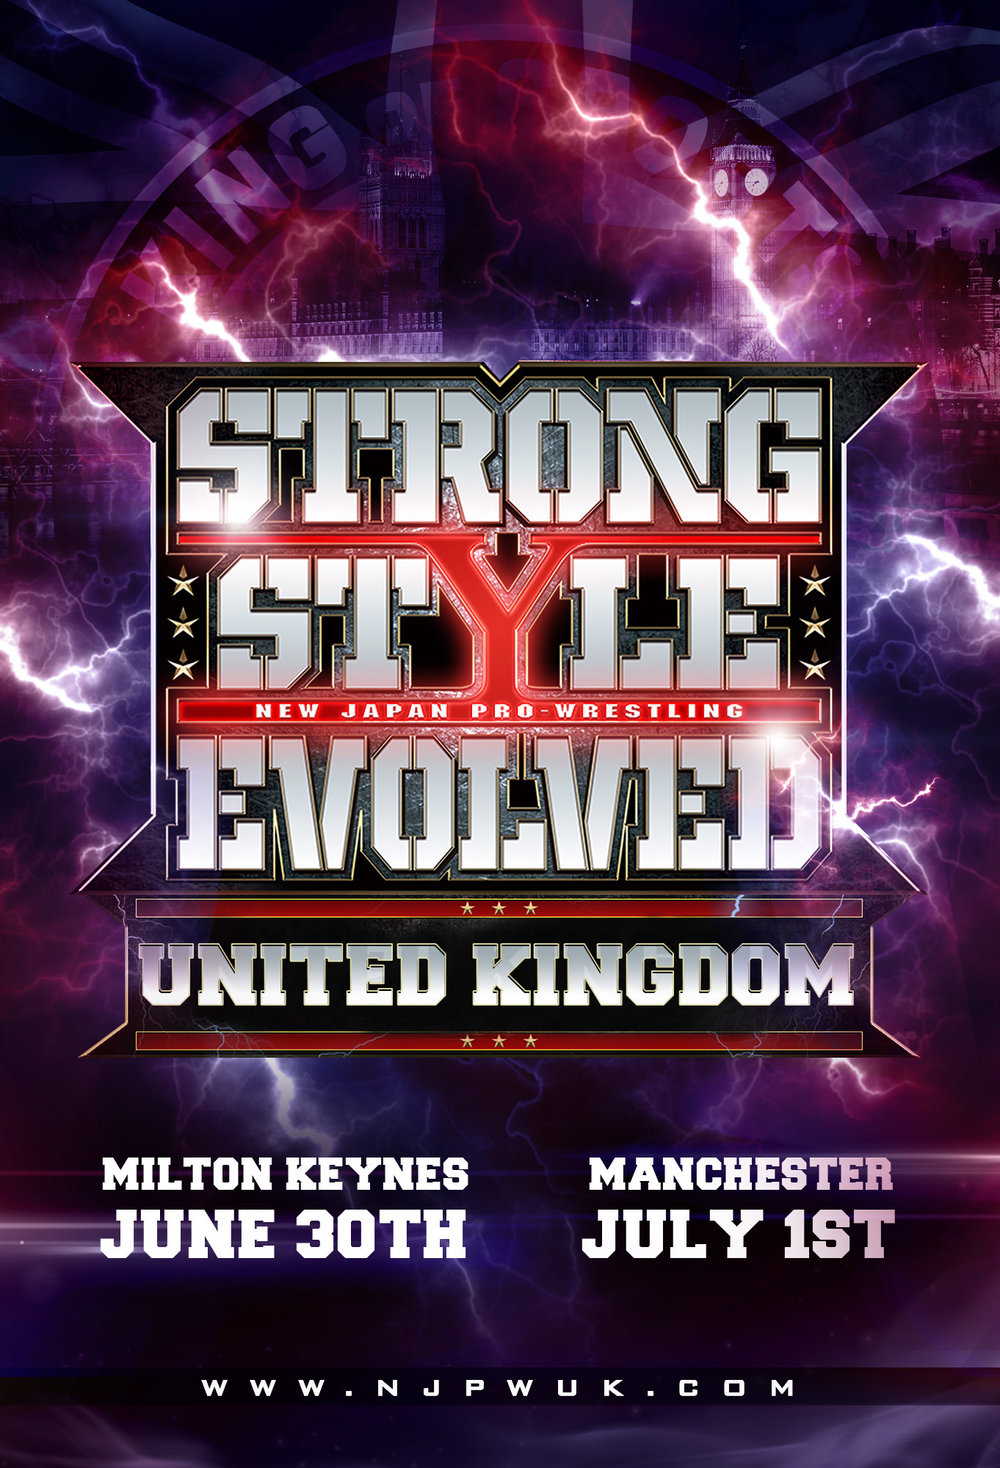 UK GET READY FOR 2 HUGE NIGHTS OF ACTION!   - The best wrestlers in the world are coming to the UK this Summer as on Saturday June 30th & Sunday July 1st in association with Revolution Pro Wrestling, New Japan Pro Wrestling present STRONG STYLE EVOLVED UK. Tickets on general sale THIS MONDAY 9am... just click on the tickets tab at the top of the page. Good luck getting the seats you want!